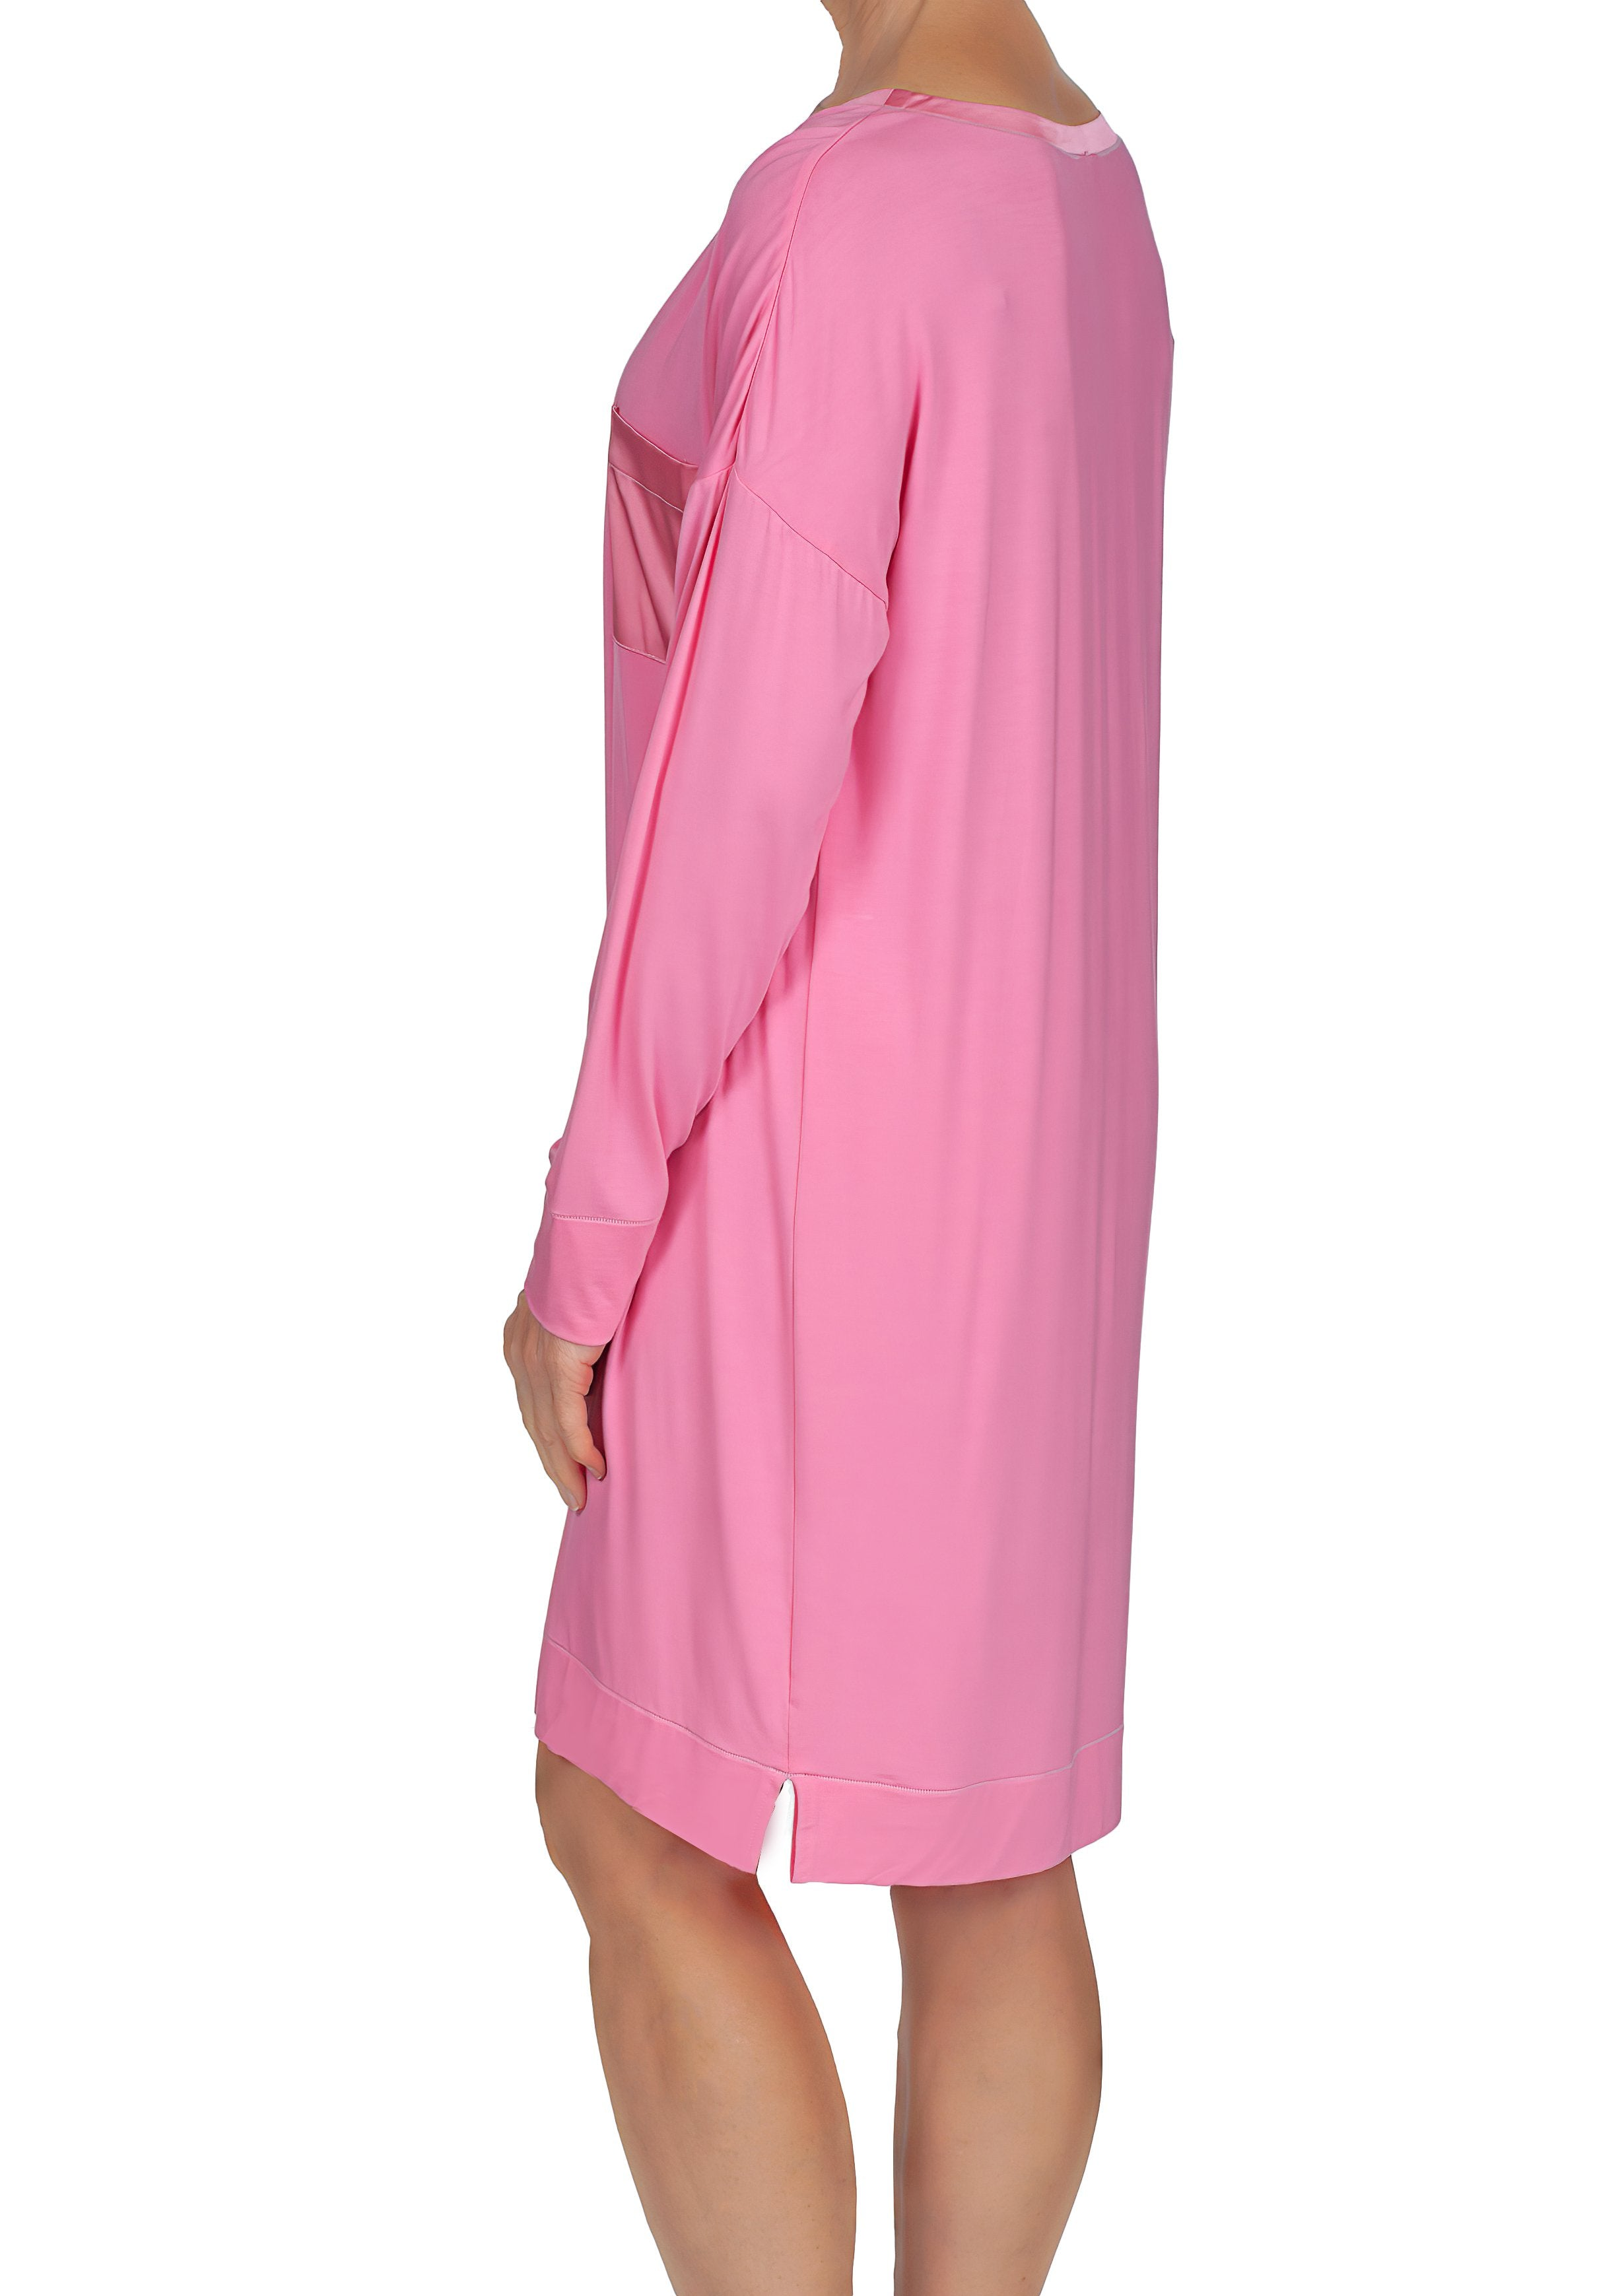 Madison Bamboo Knit Sleepshirt - Cameo Rose Mystique Intimates